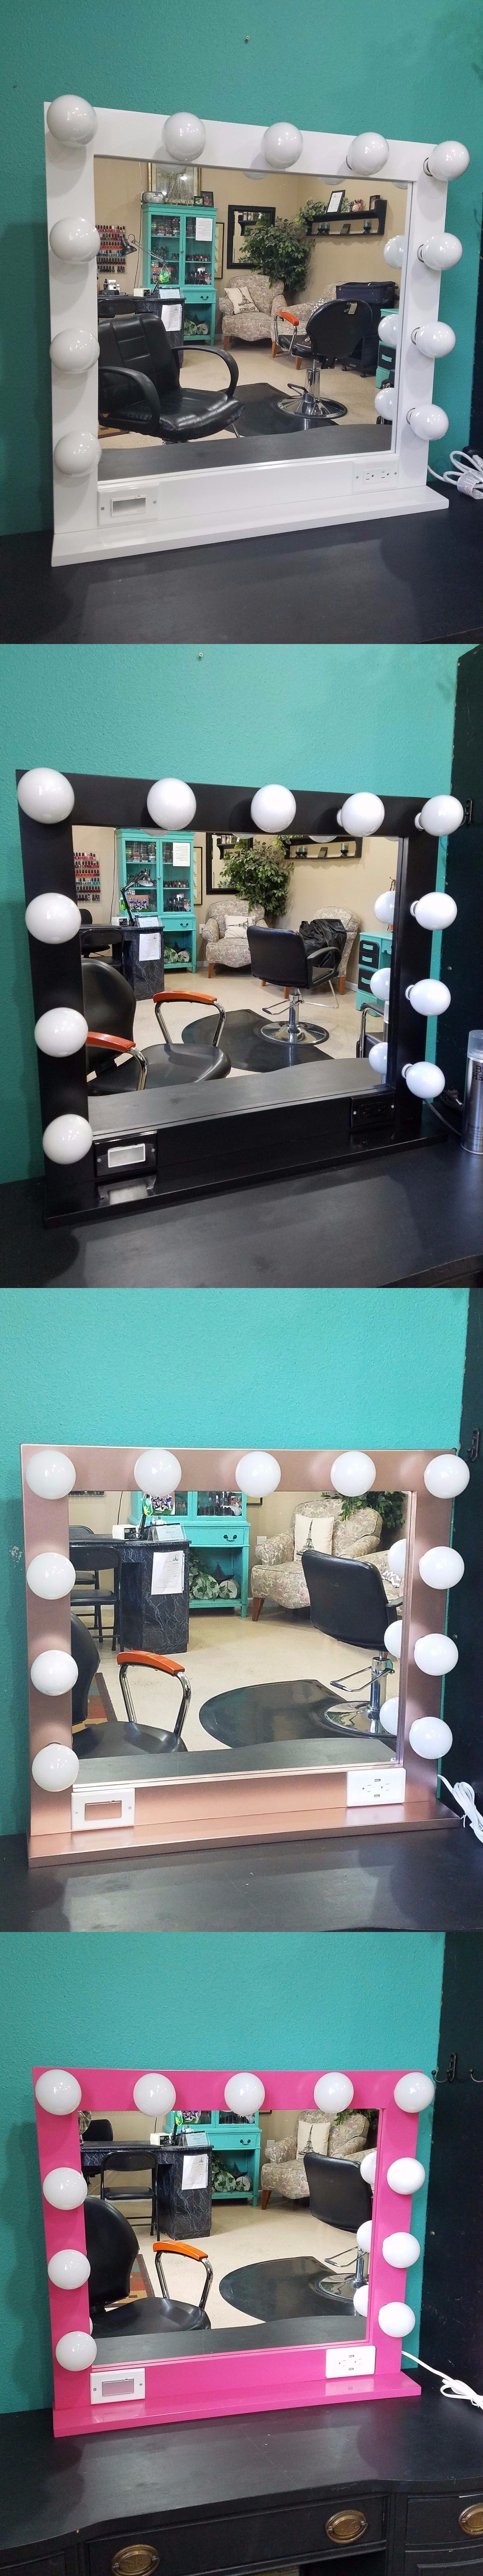 Makeup Mirrors: Lighted Hollywood Style Vanity Glamour Make Up ...